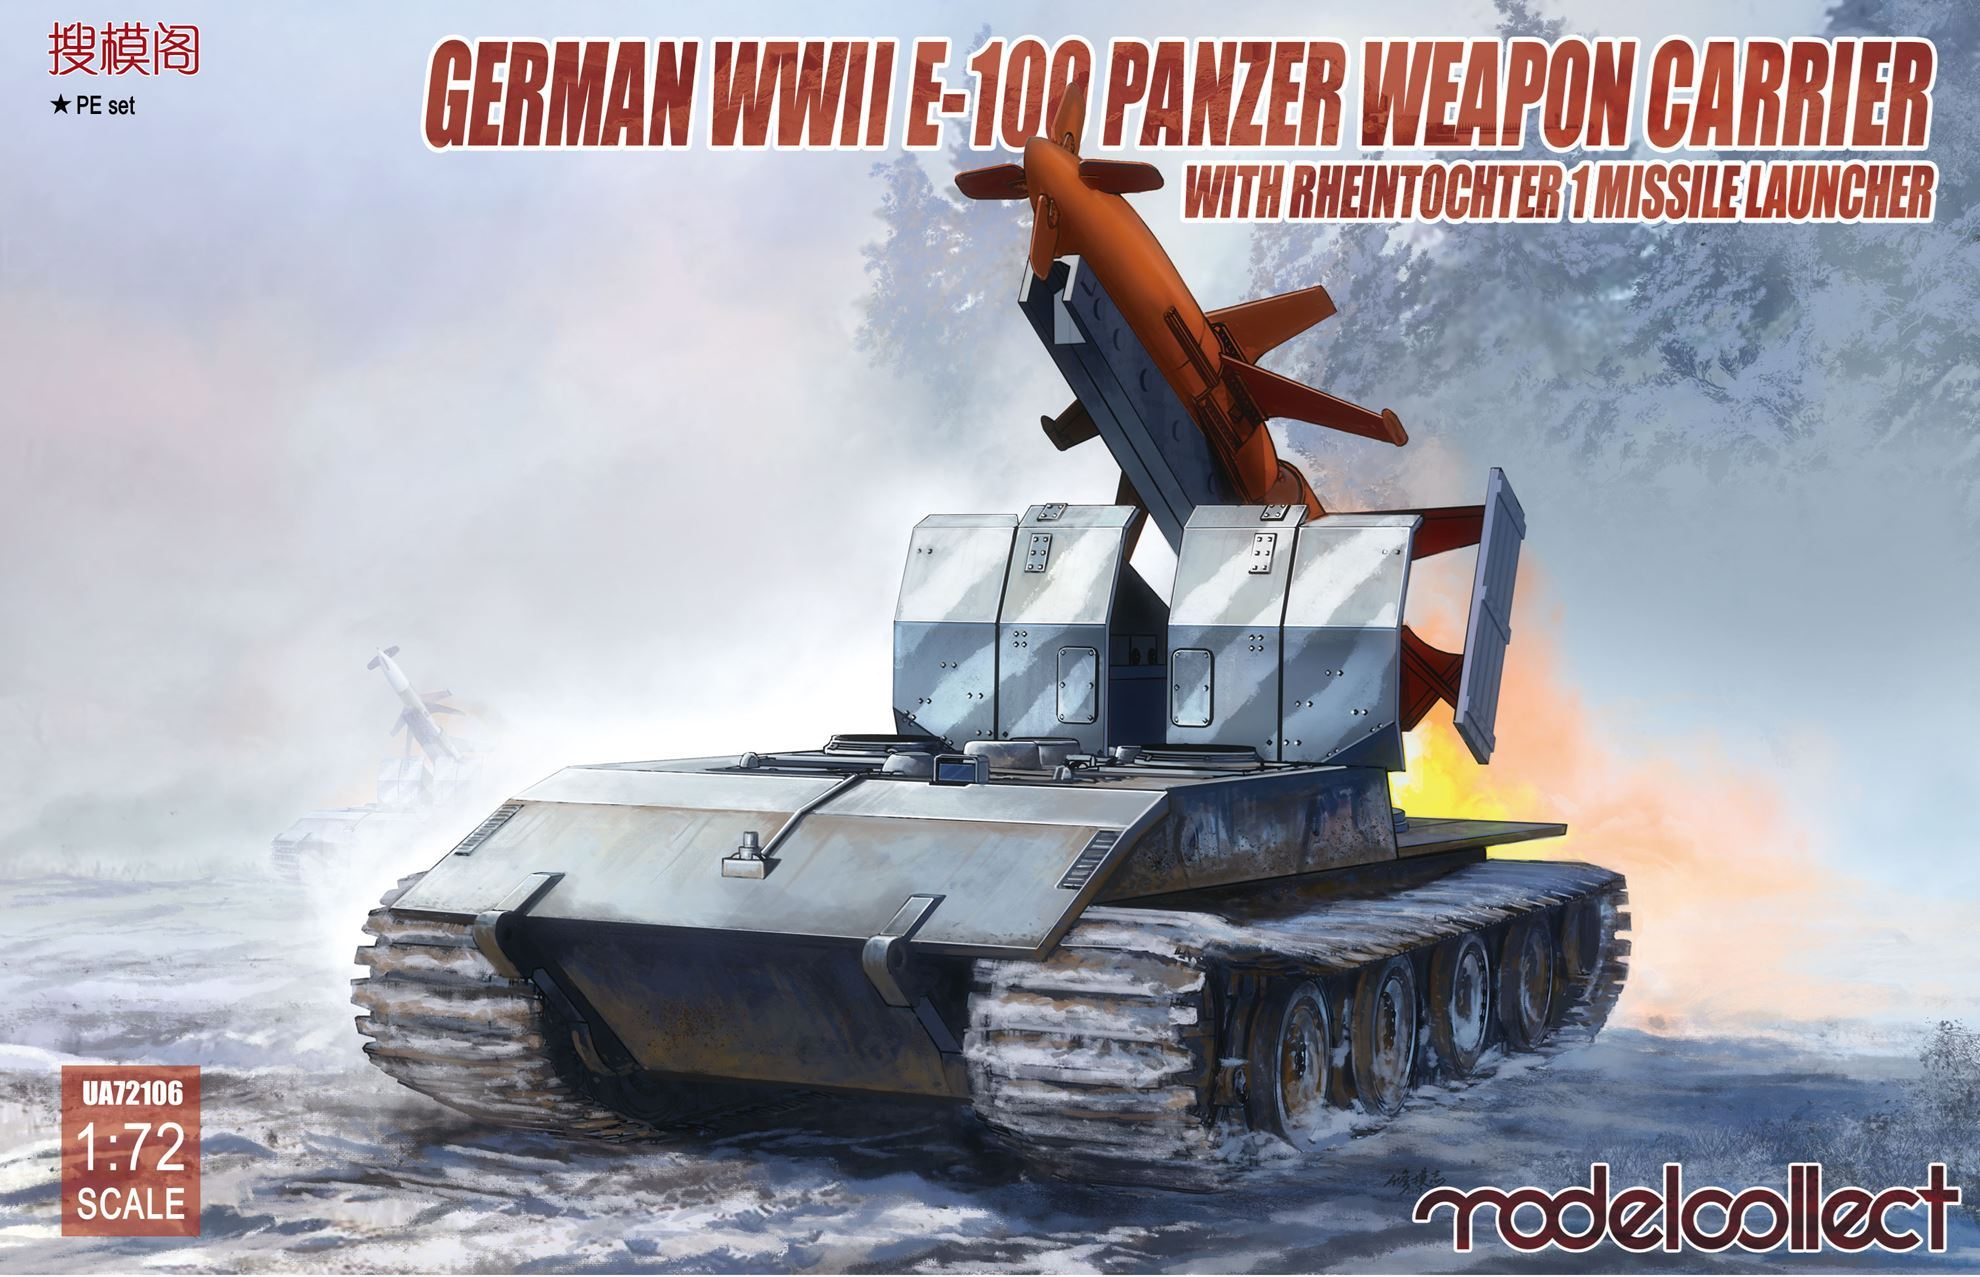 ModelCollect German WWII E-100 panzer weapon carrier with Rheintochter 1 missile launcher